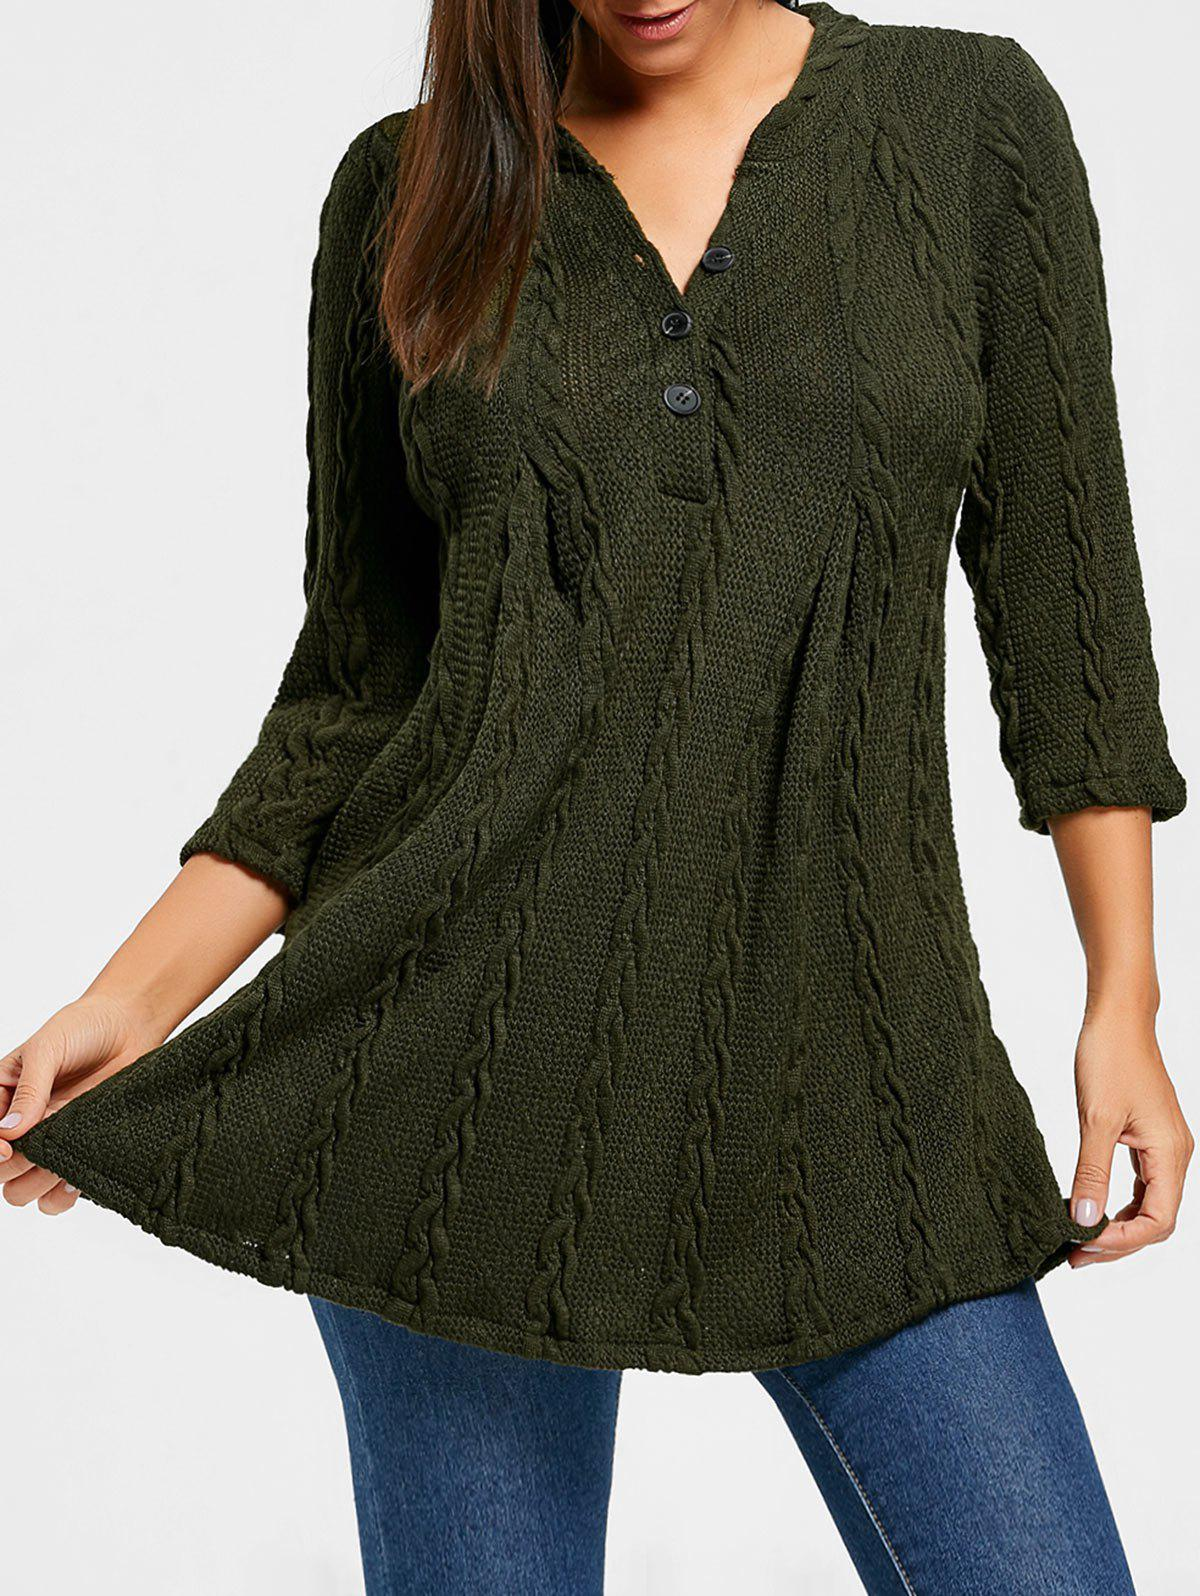 Cable Knitted V Neck Tunic SweaterWOMEN<br><br>Size: 2XL; Color: ARMY GREEN; Type: Pullovers; Material: Polyester,Spandex; Sleeve Length: Three Quarter; Collar: V-Neck; Style: Fashion; Pattern Type: Solid; Season: Fall,Spring; Weight: 0.6300kg; Package Contents: 1 x Sweater;